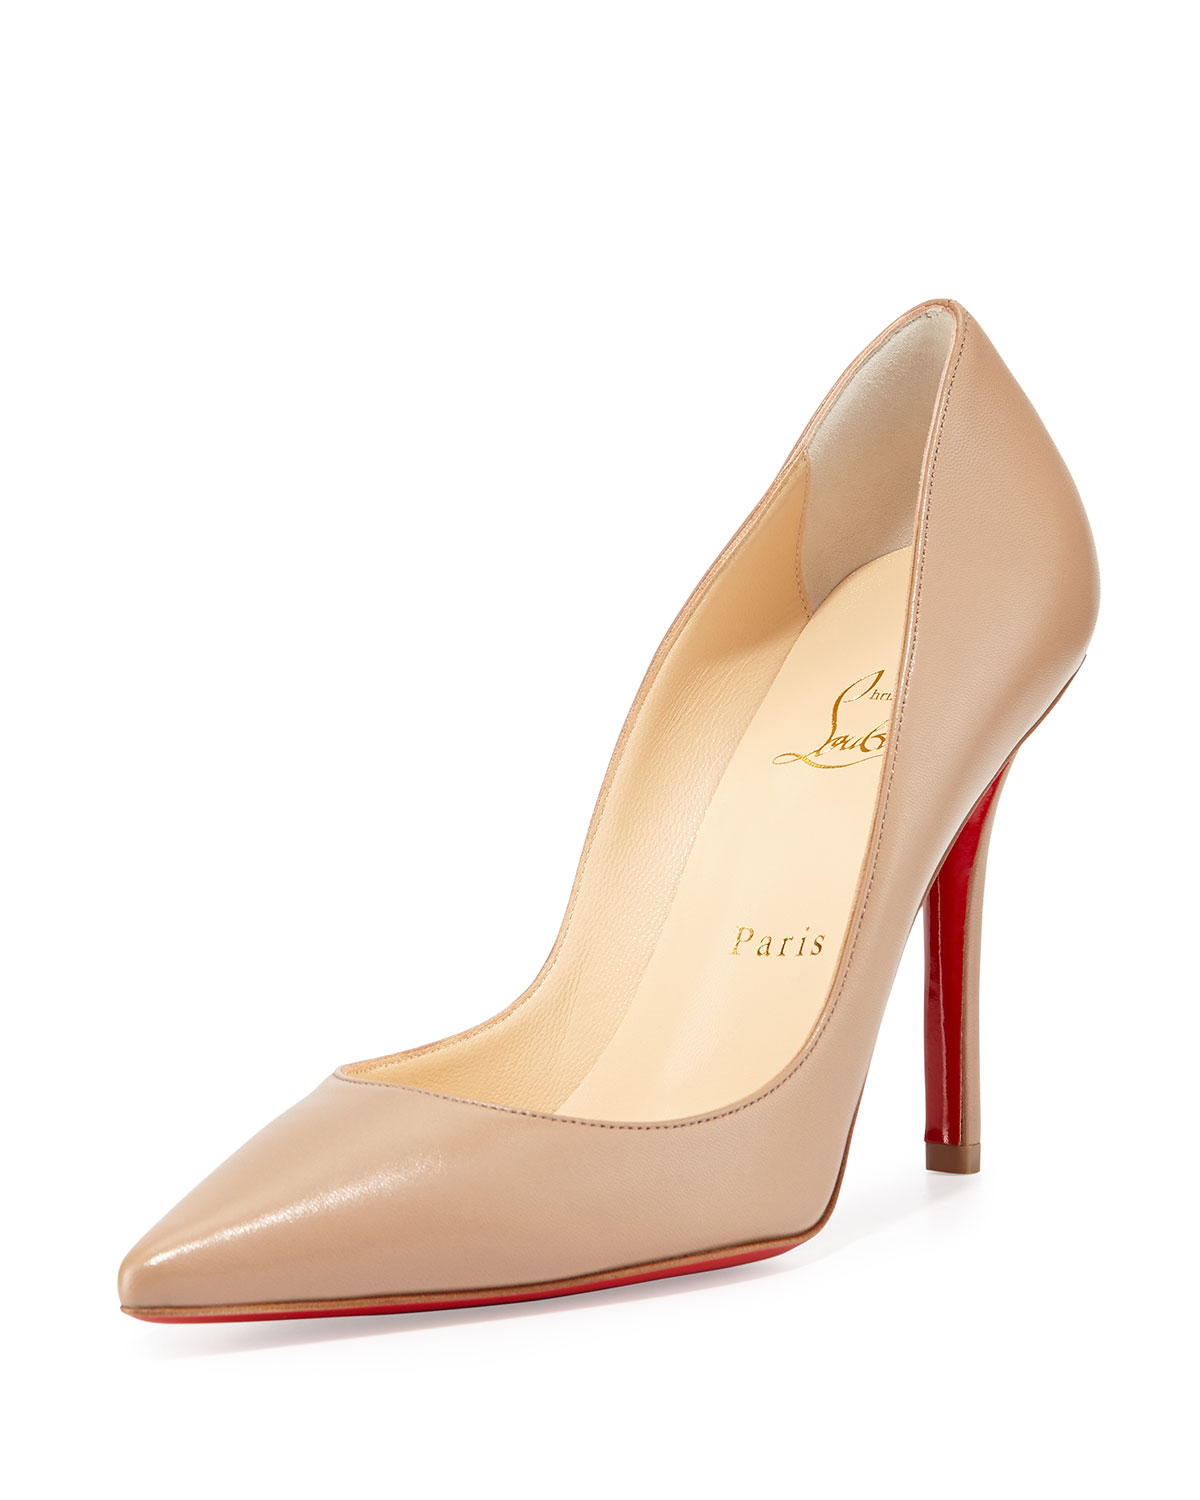 44eb14ab049 Apostrophy Pointed Red Sole Pump, Nude